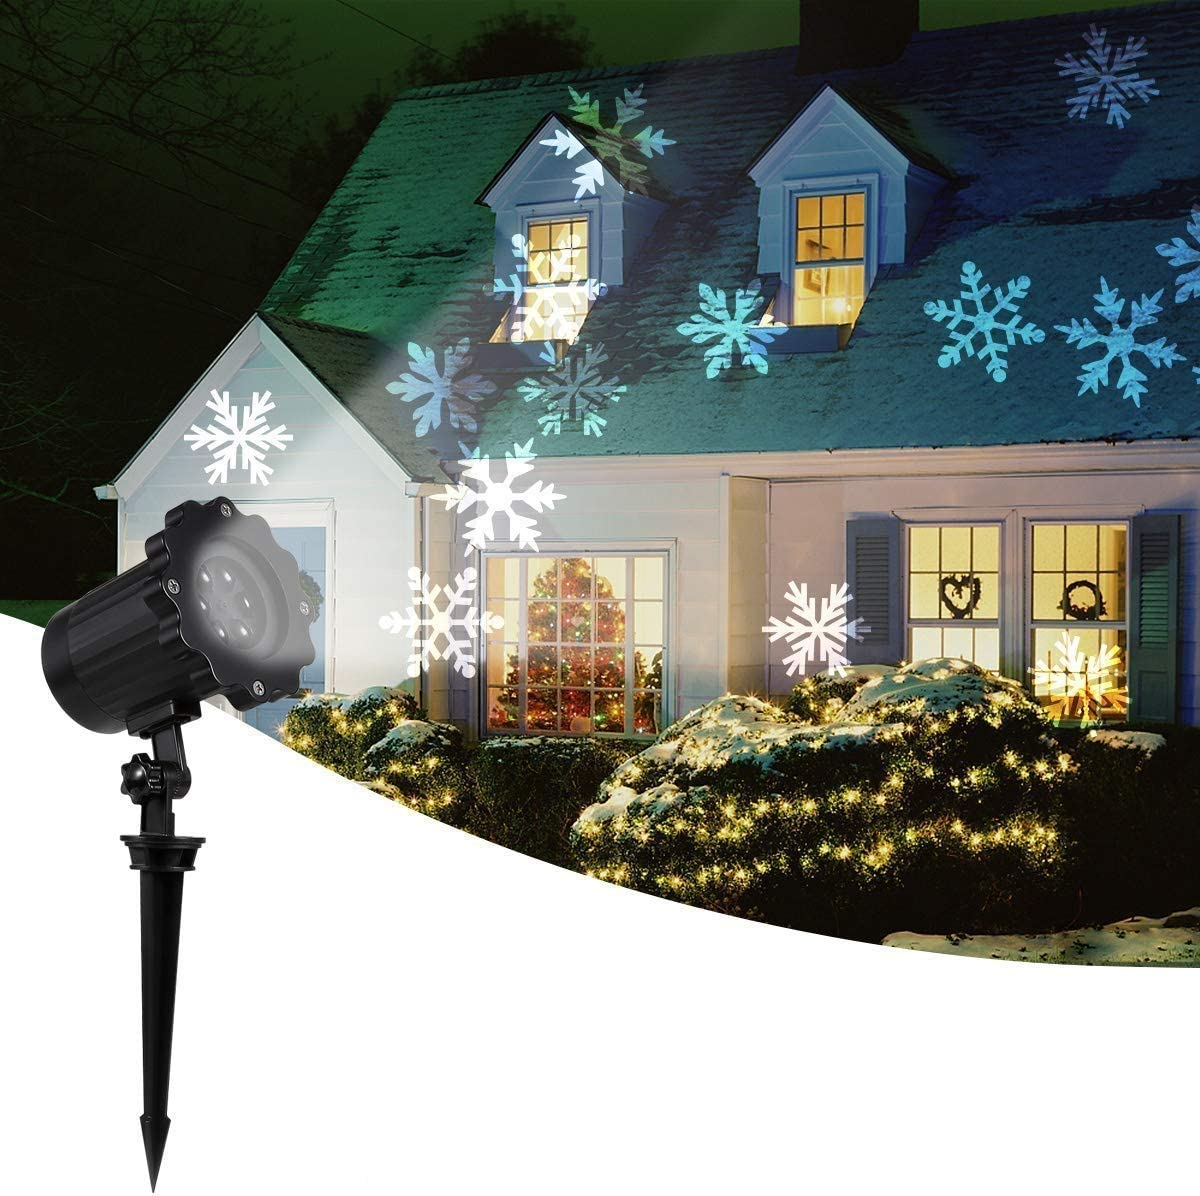 2020 New Moving Snowflake Lights, White Christmas Projector Lights LED Landscape Projection, Indoor Outdoor Spotlights Decor Stage Irradiation Garden Tree Wall, Perfect Halloween Holiday Party